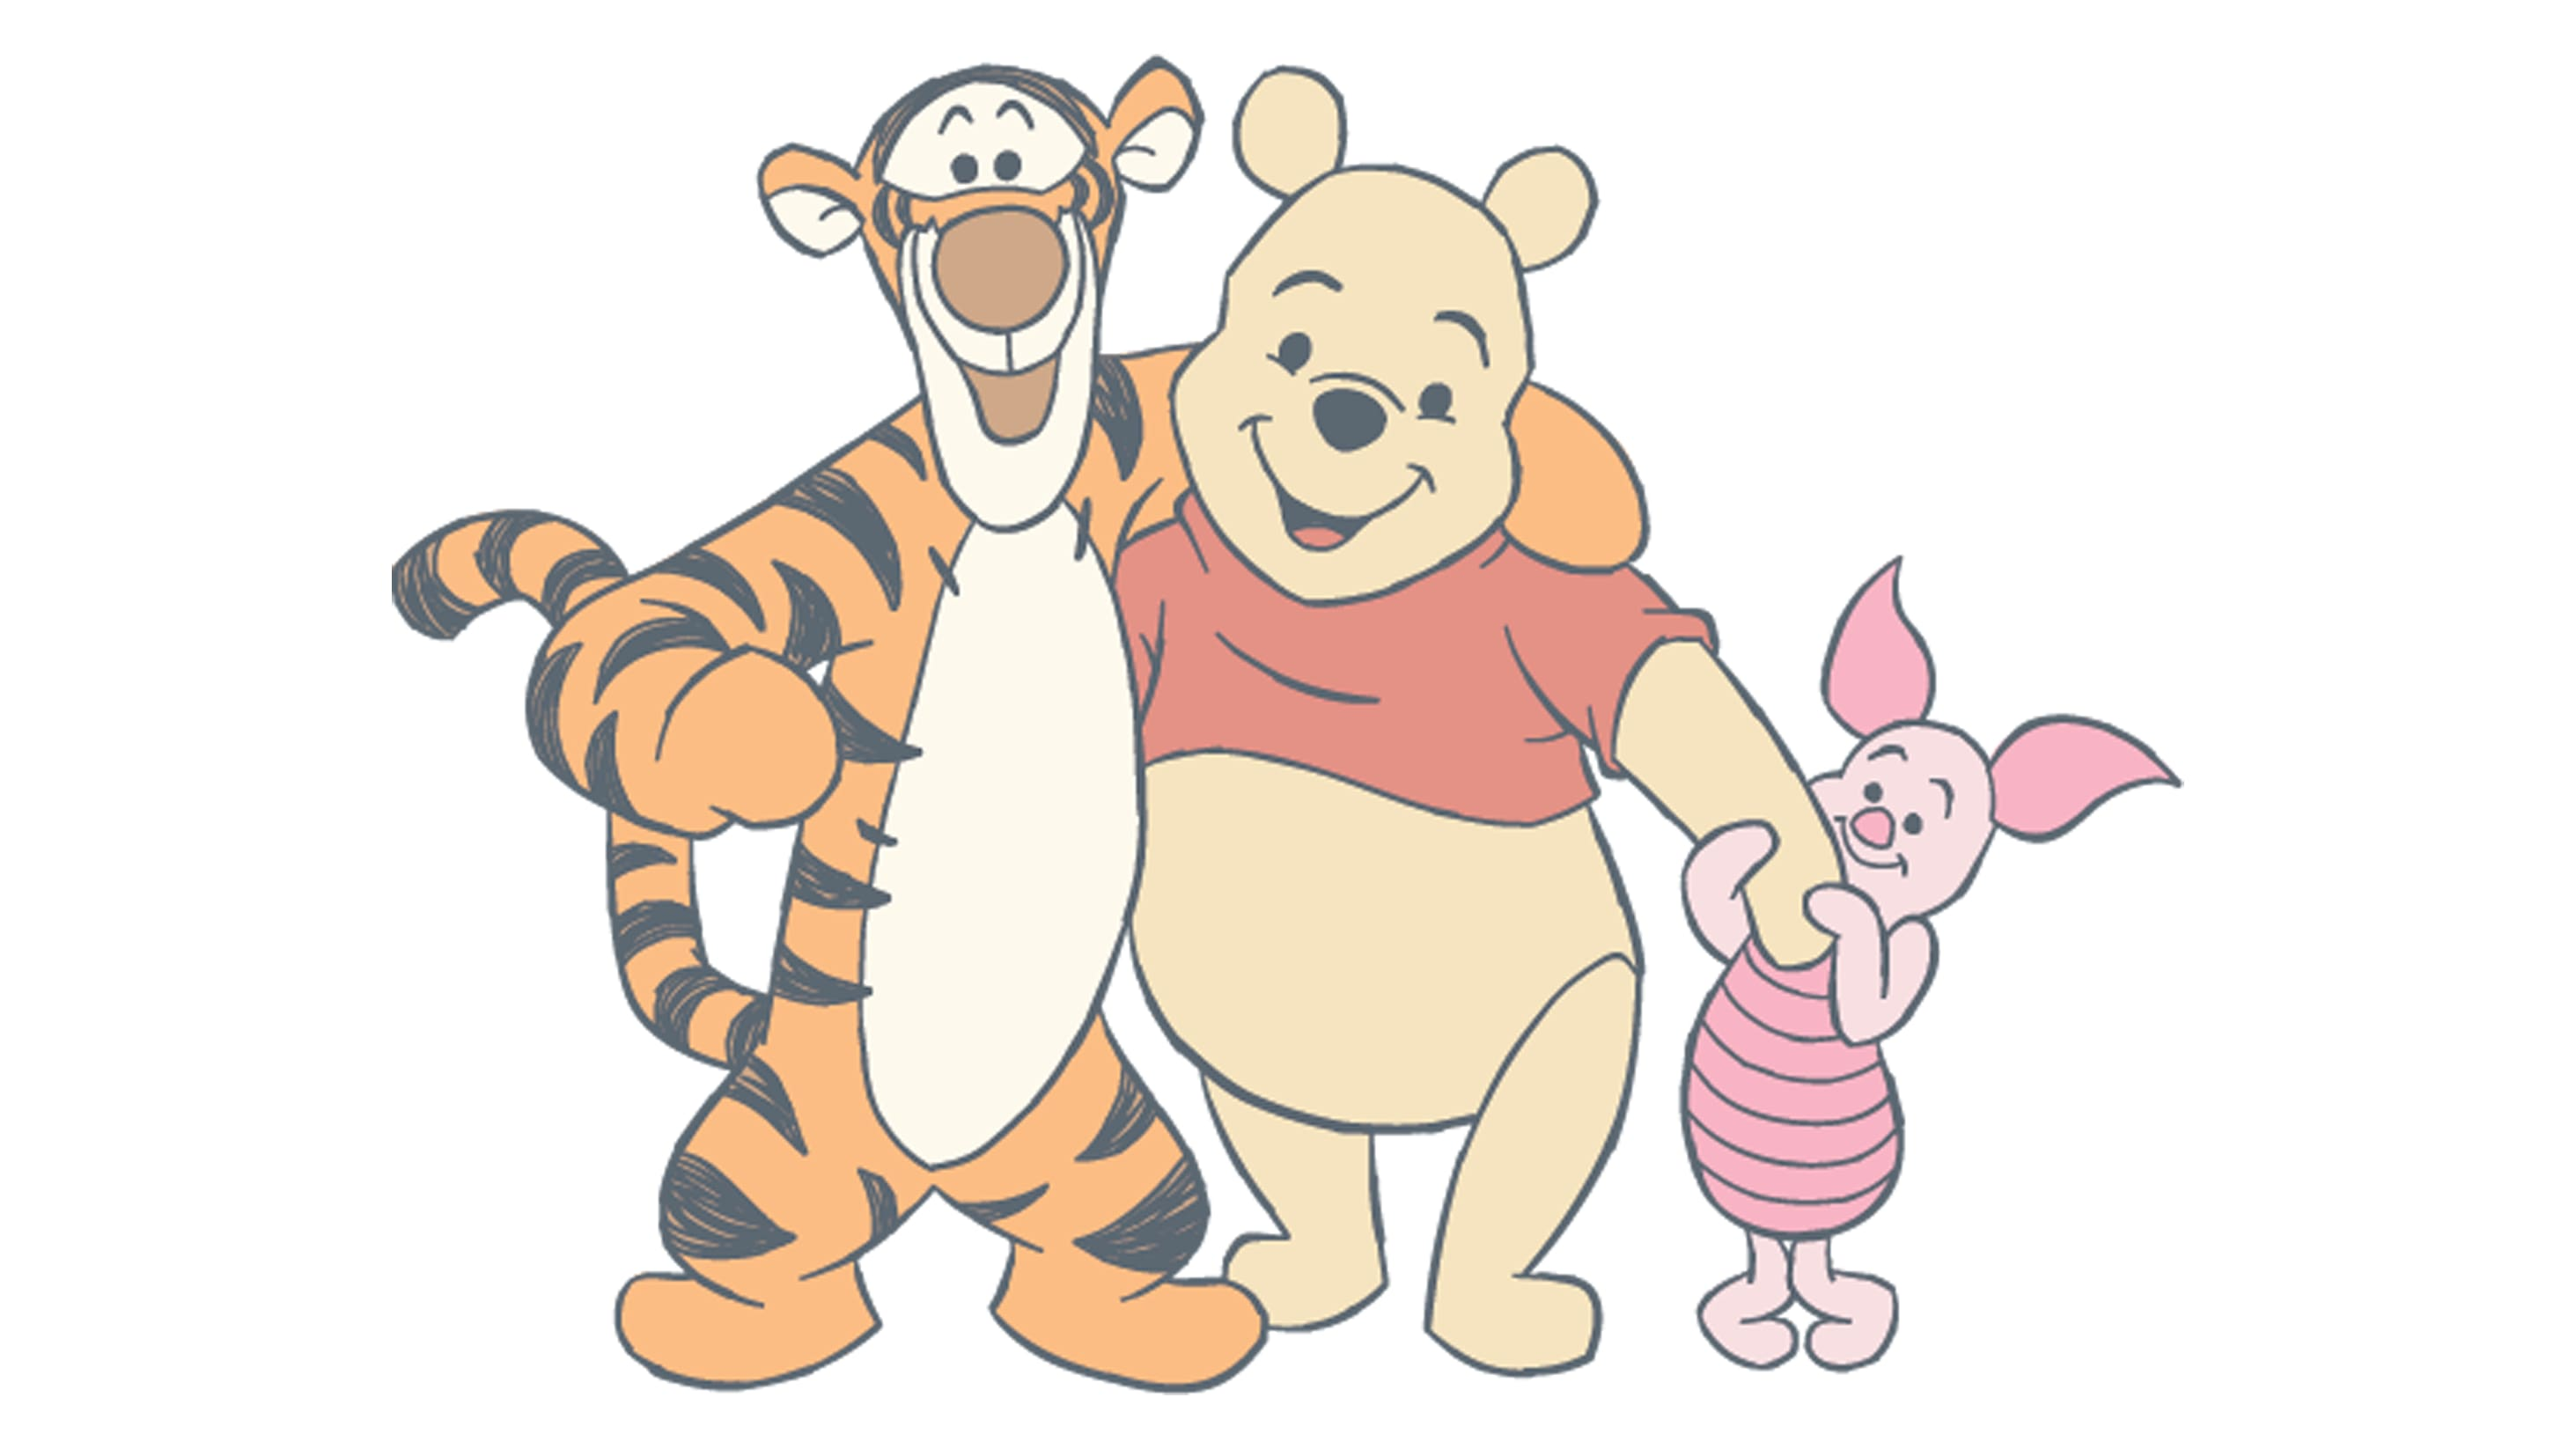 Que tal colorir as aventuras da Turma do Ursinho Pooh?